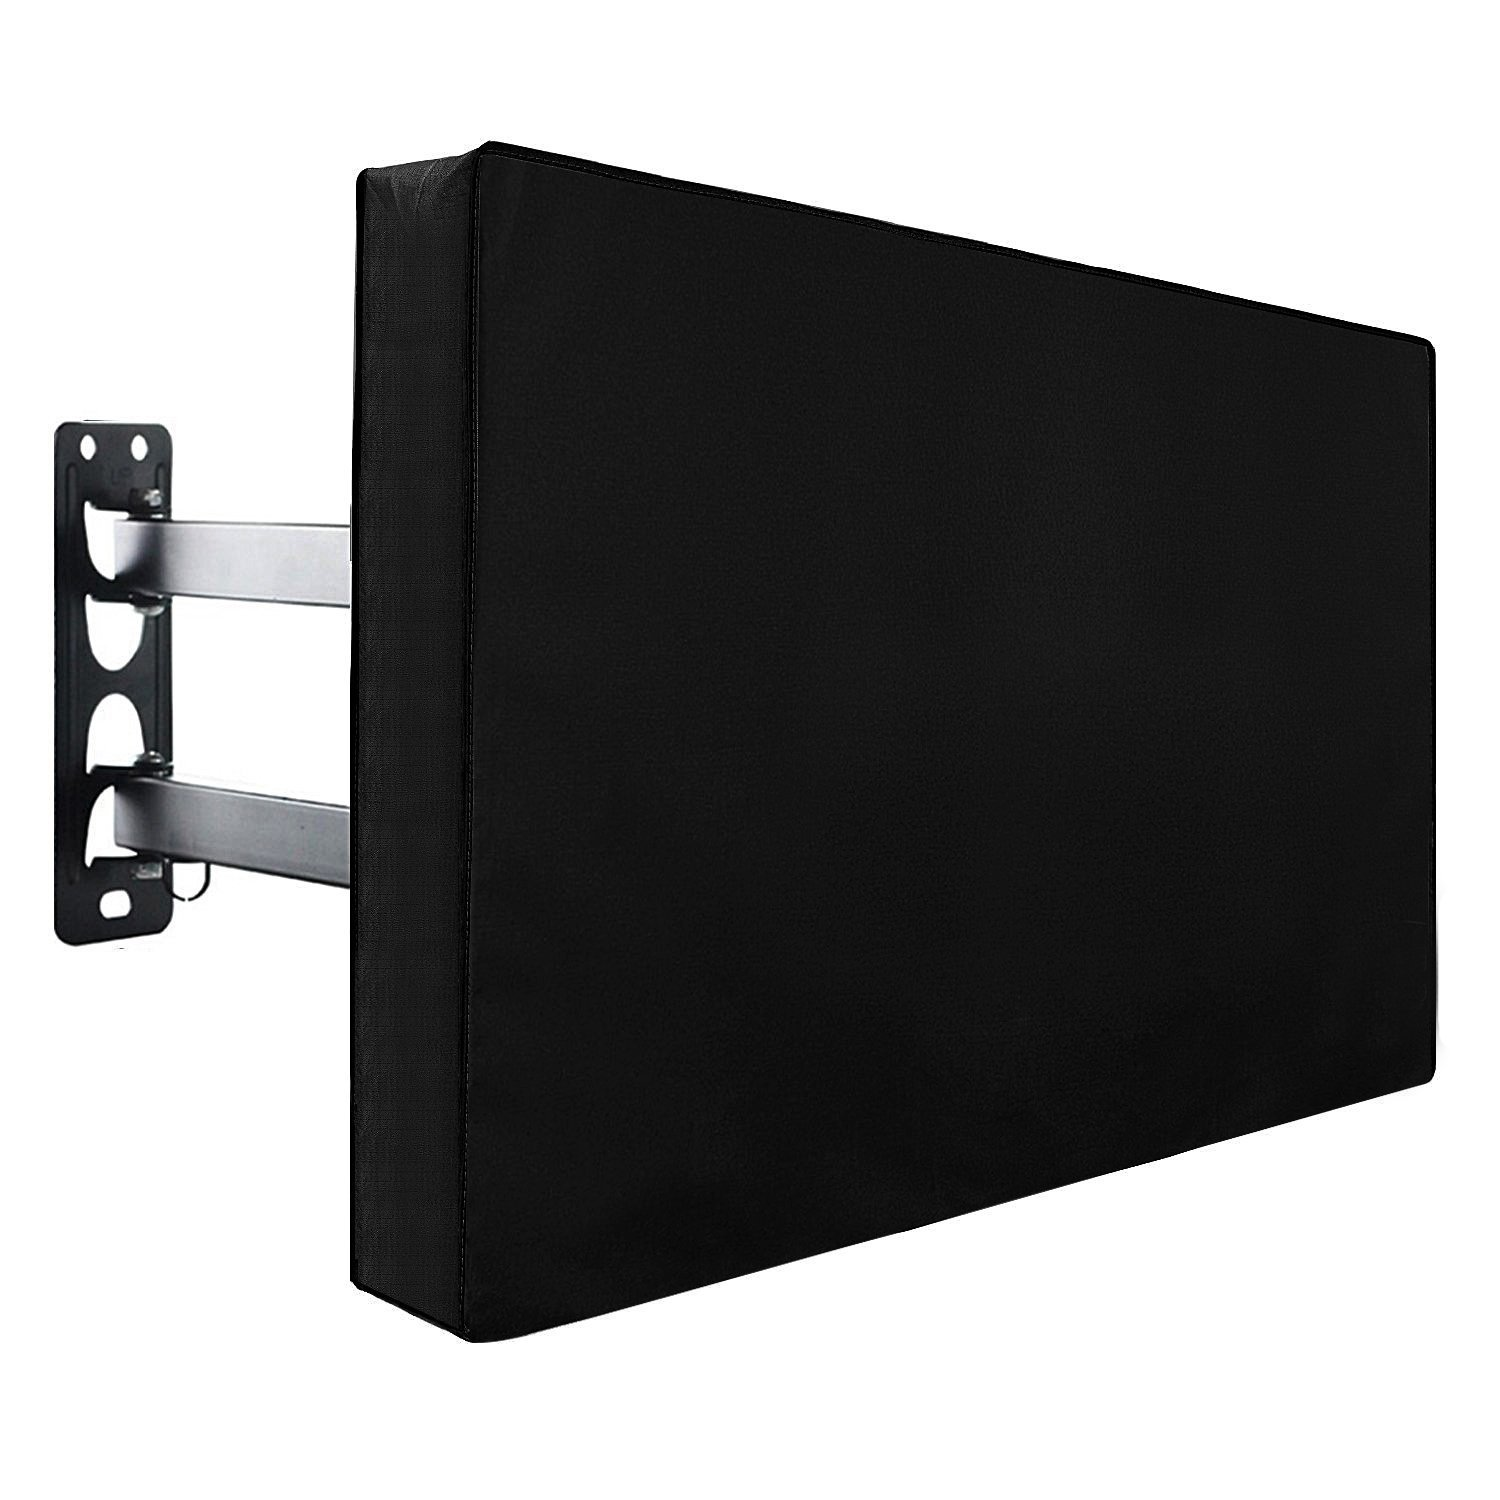 MeOkey Outdoor Waterproof TV Cover Universal Television Screen Protecttor, 50''-52''